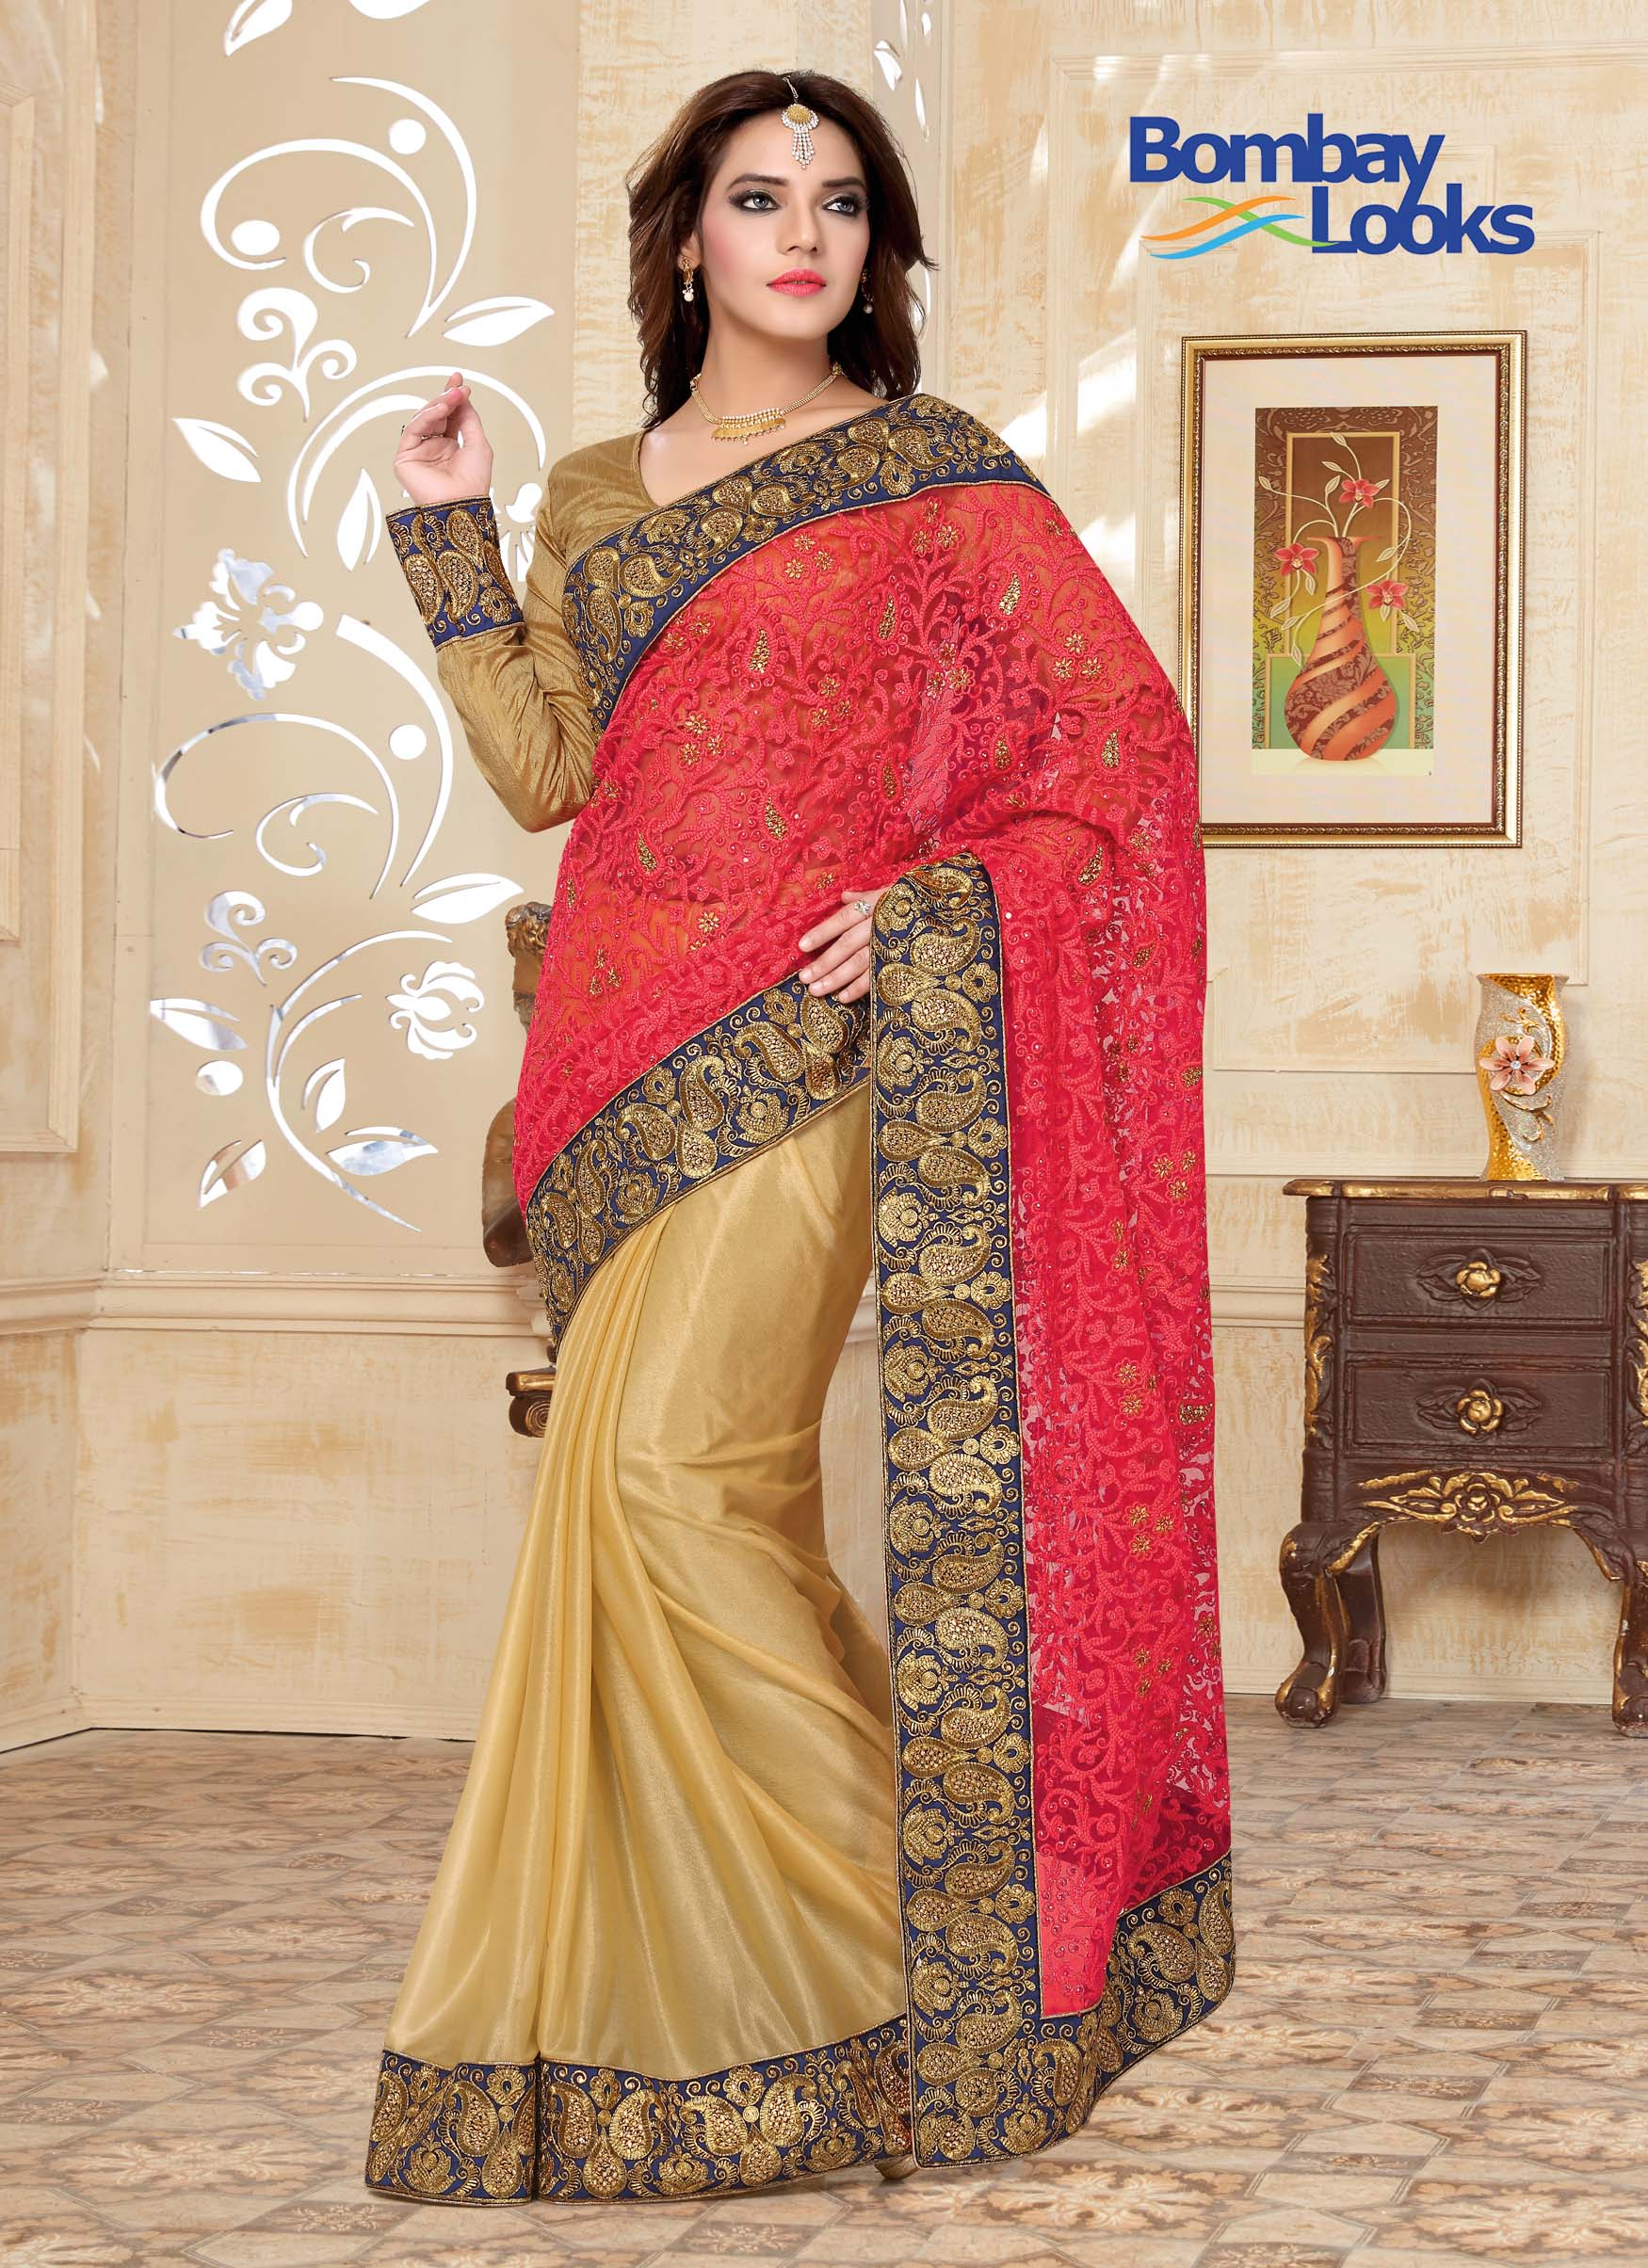 Elegant pink and gold half anf half saree with embroidered body and border work